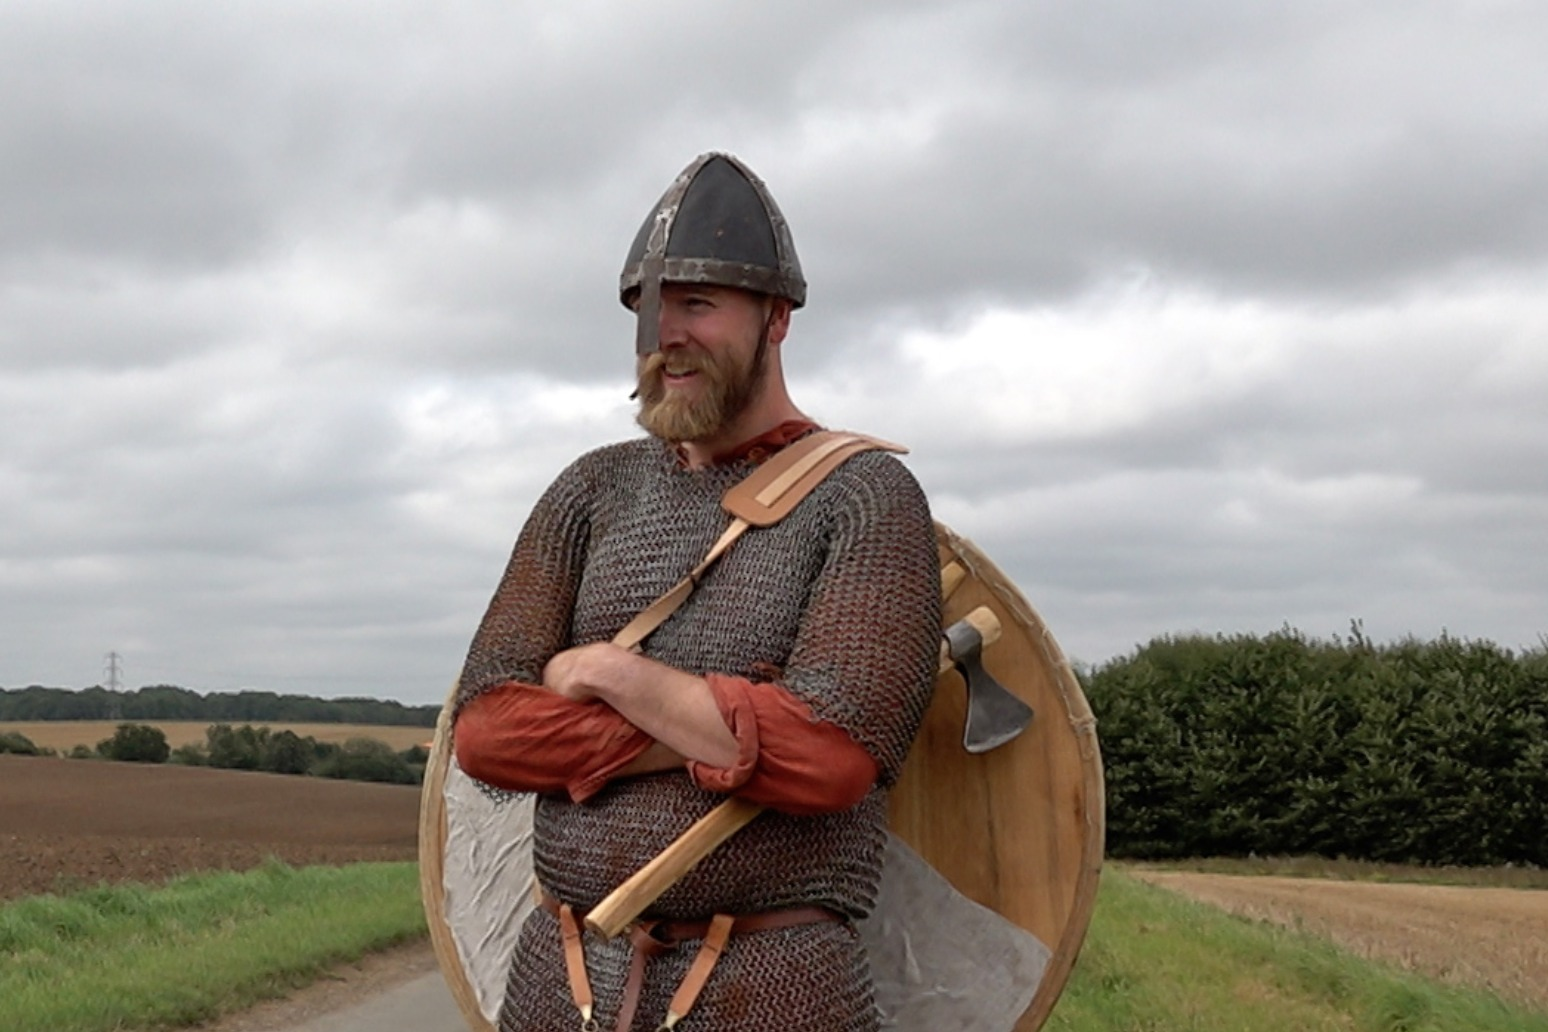 Fundraising 'history geek' to run Viking march route in full fighting kit